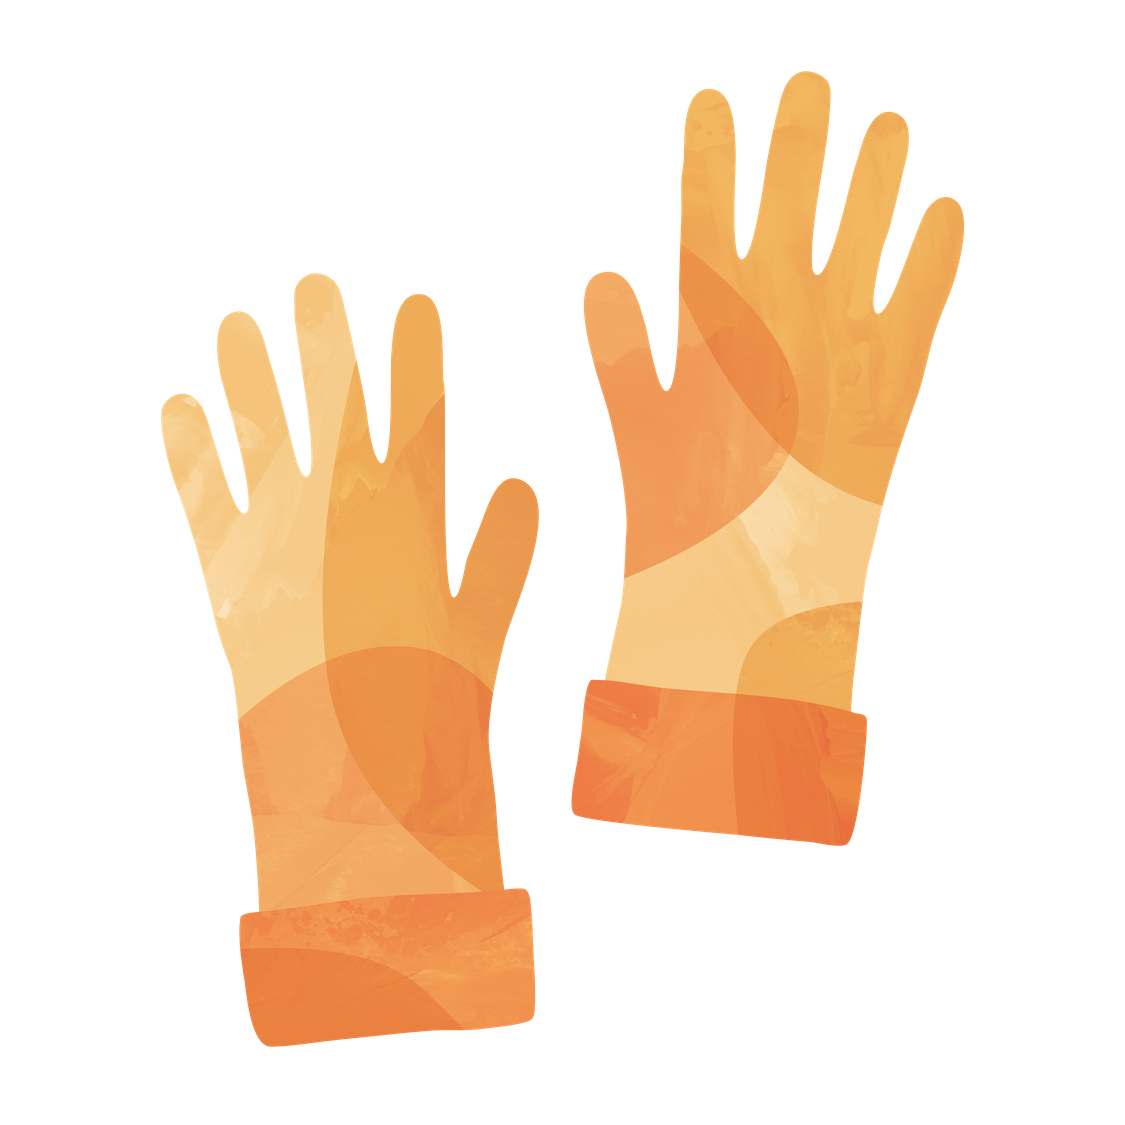 An orange illustration of gloves to wear while washing blood out of clothes